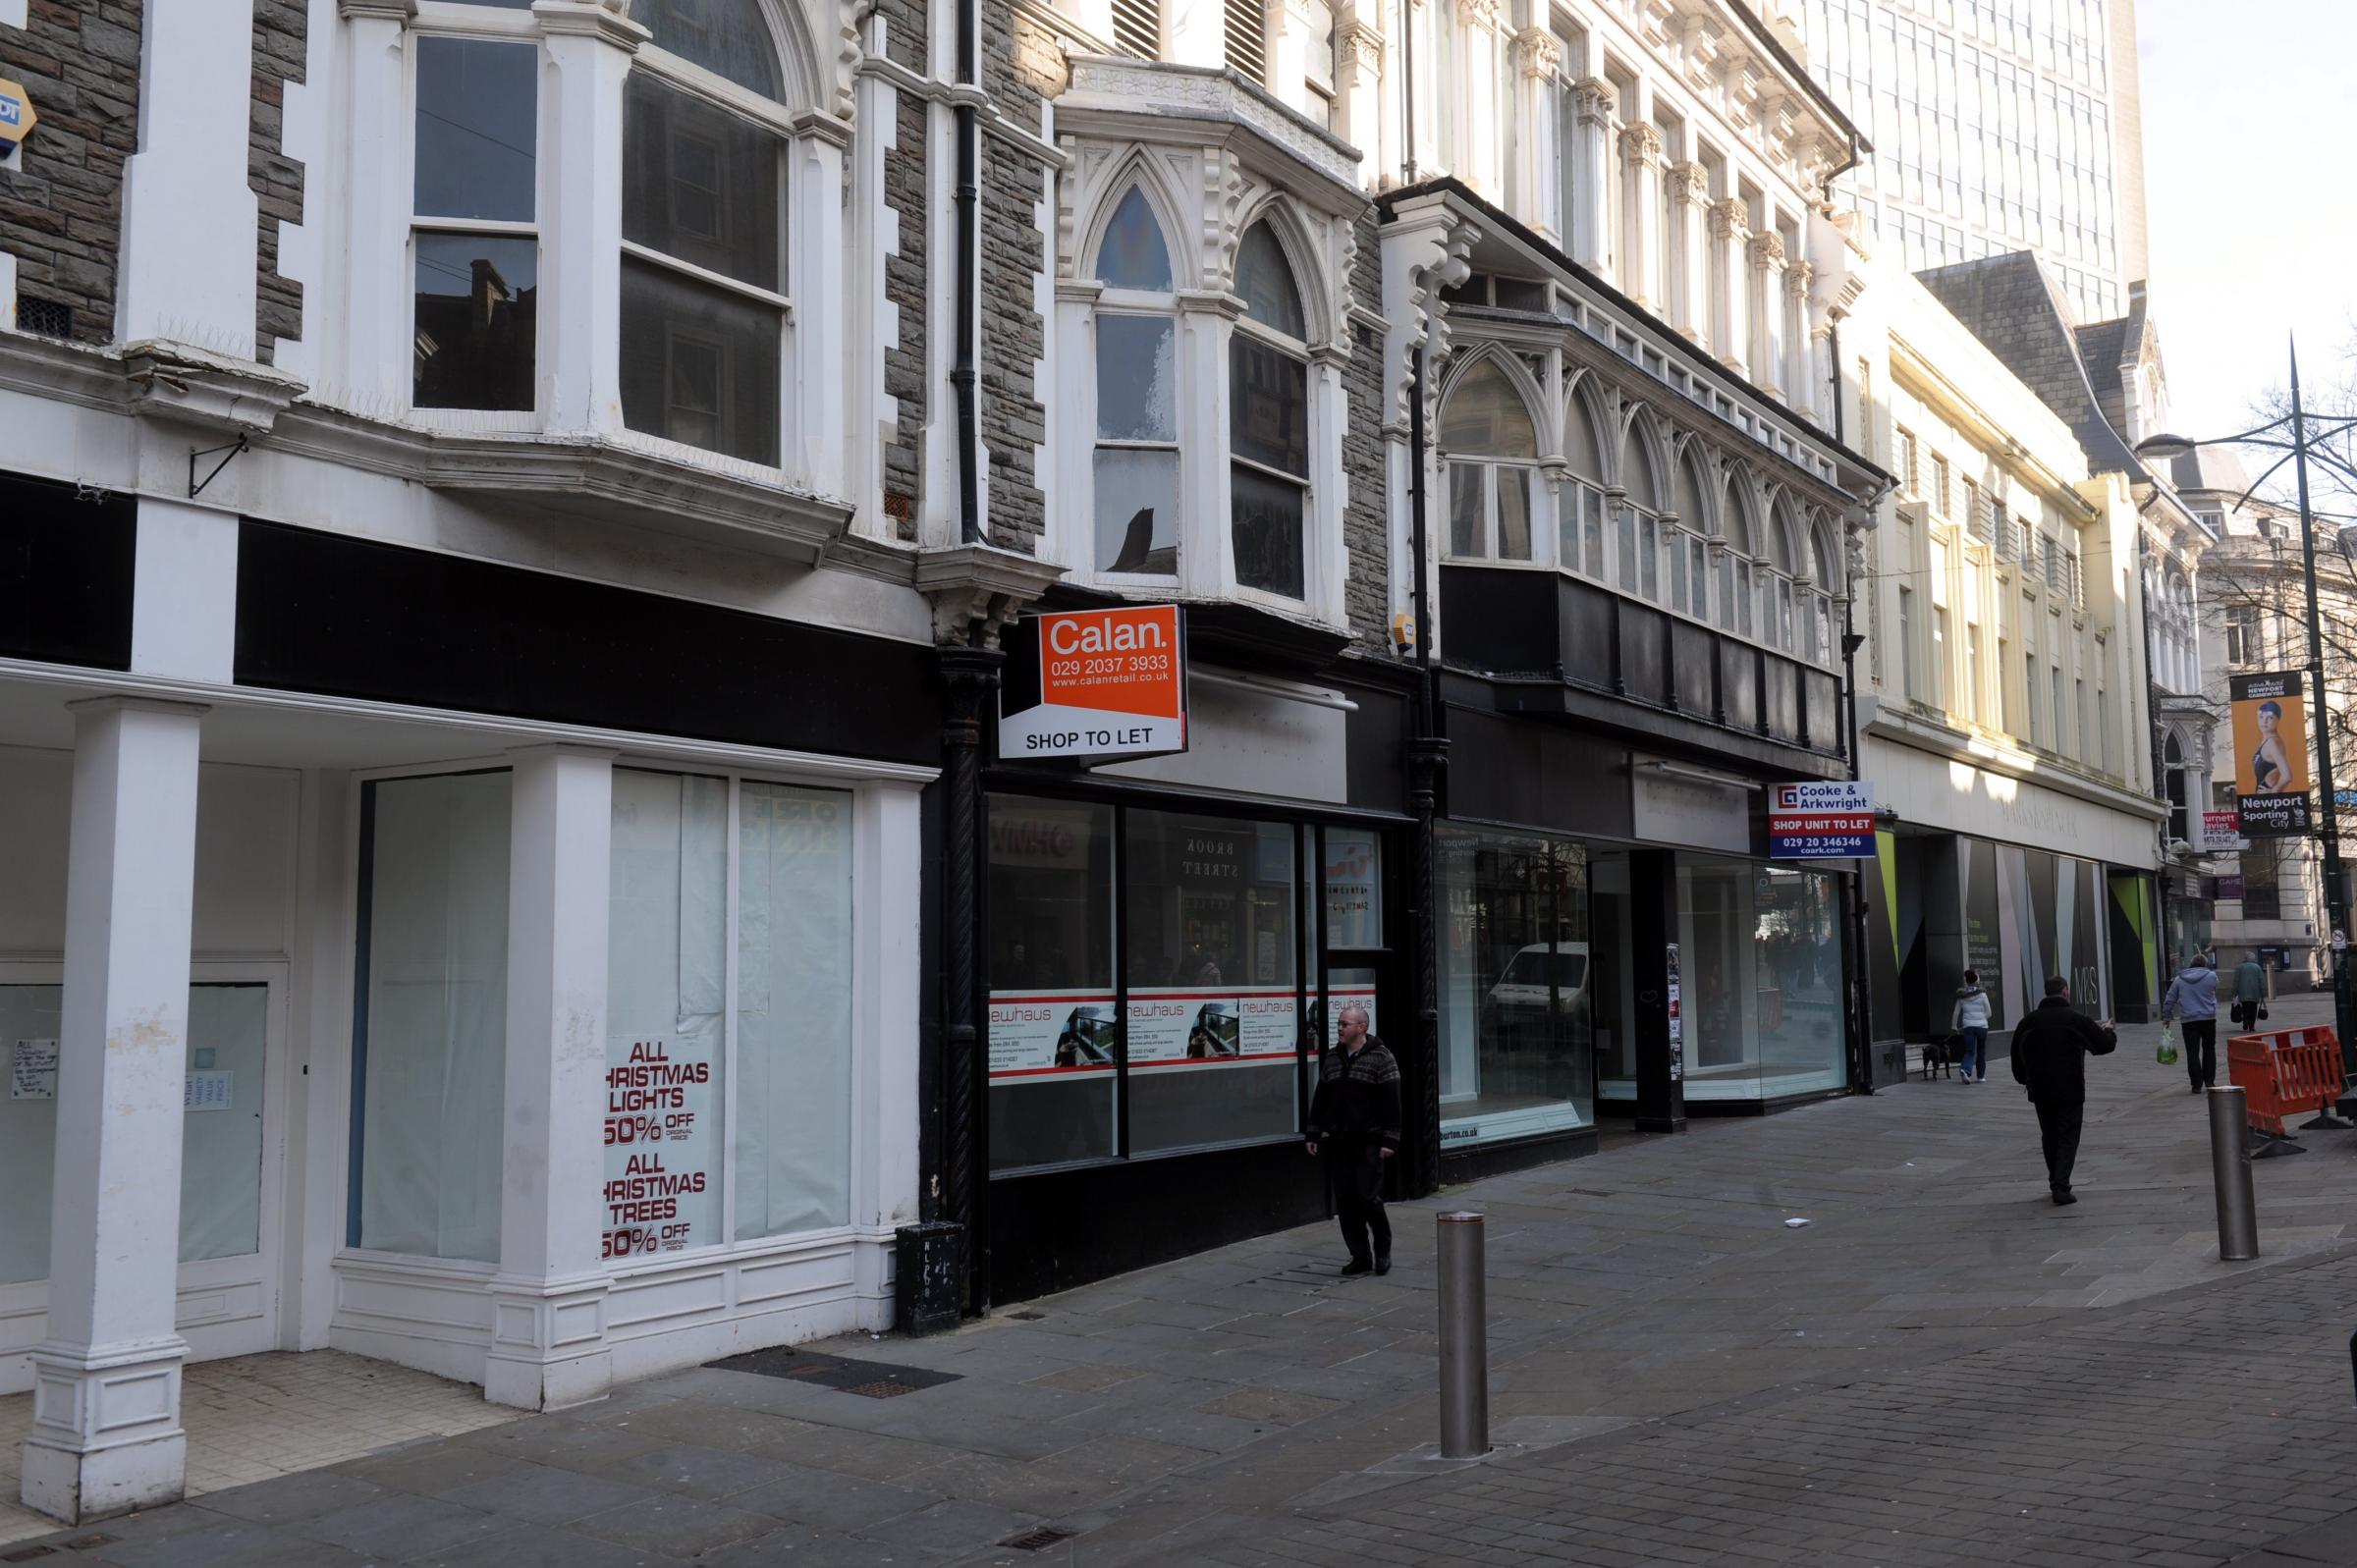 Newport has second highest rate of empty shops in UK